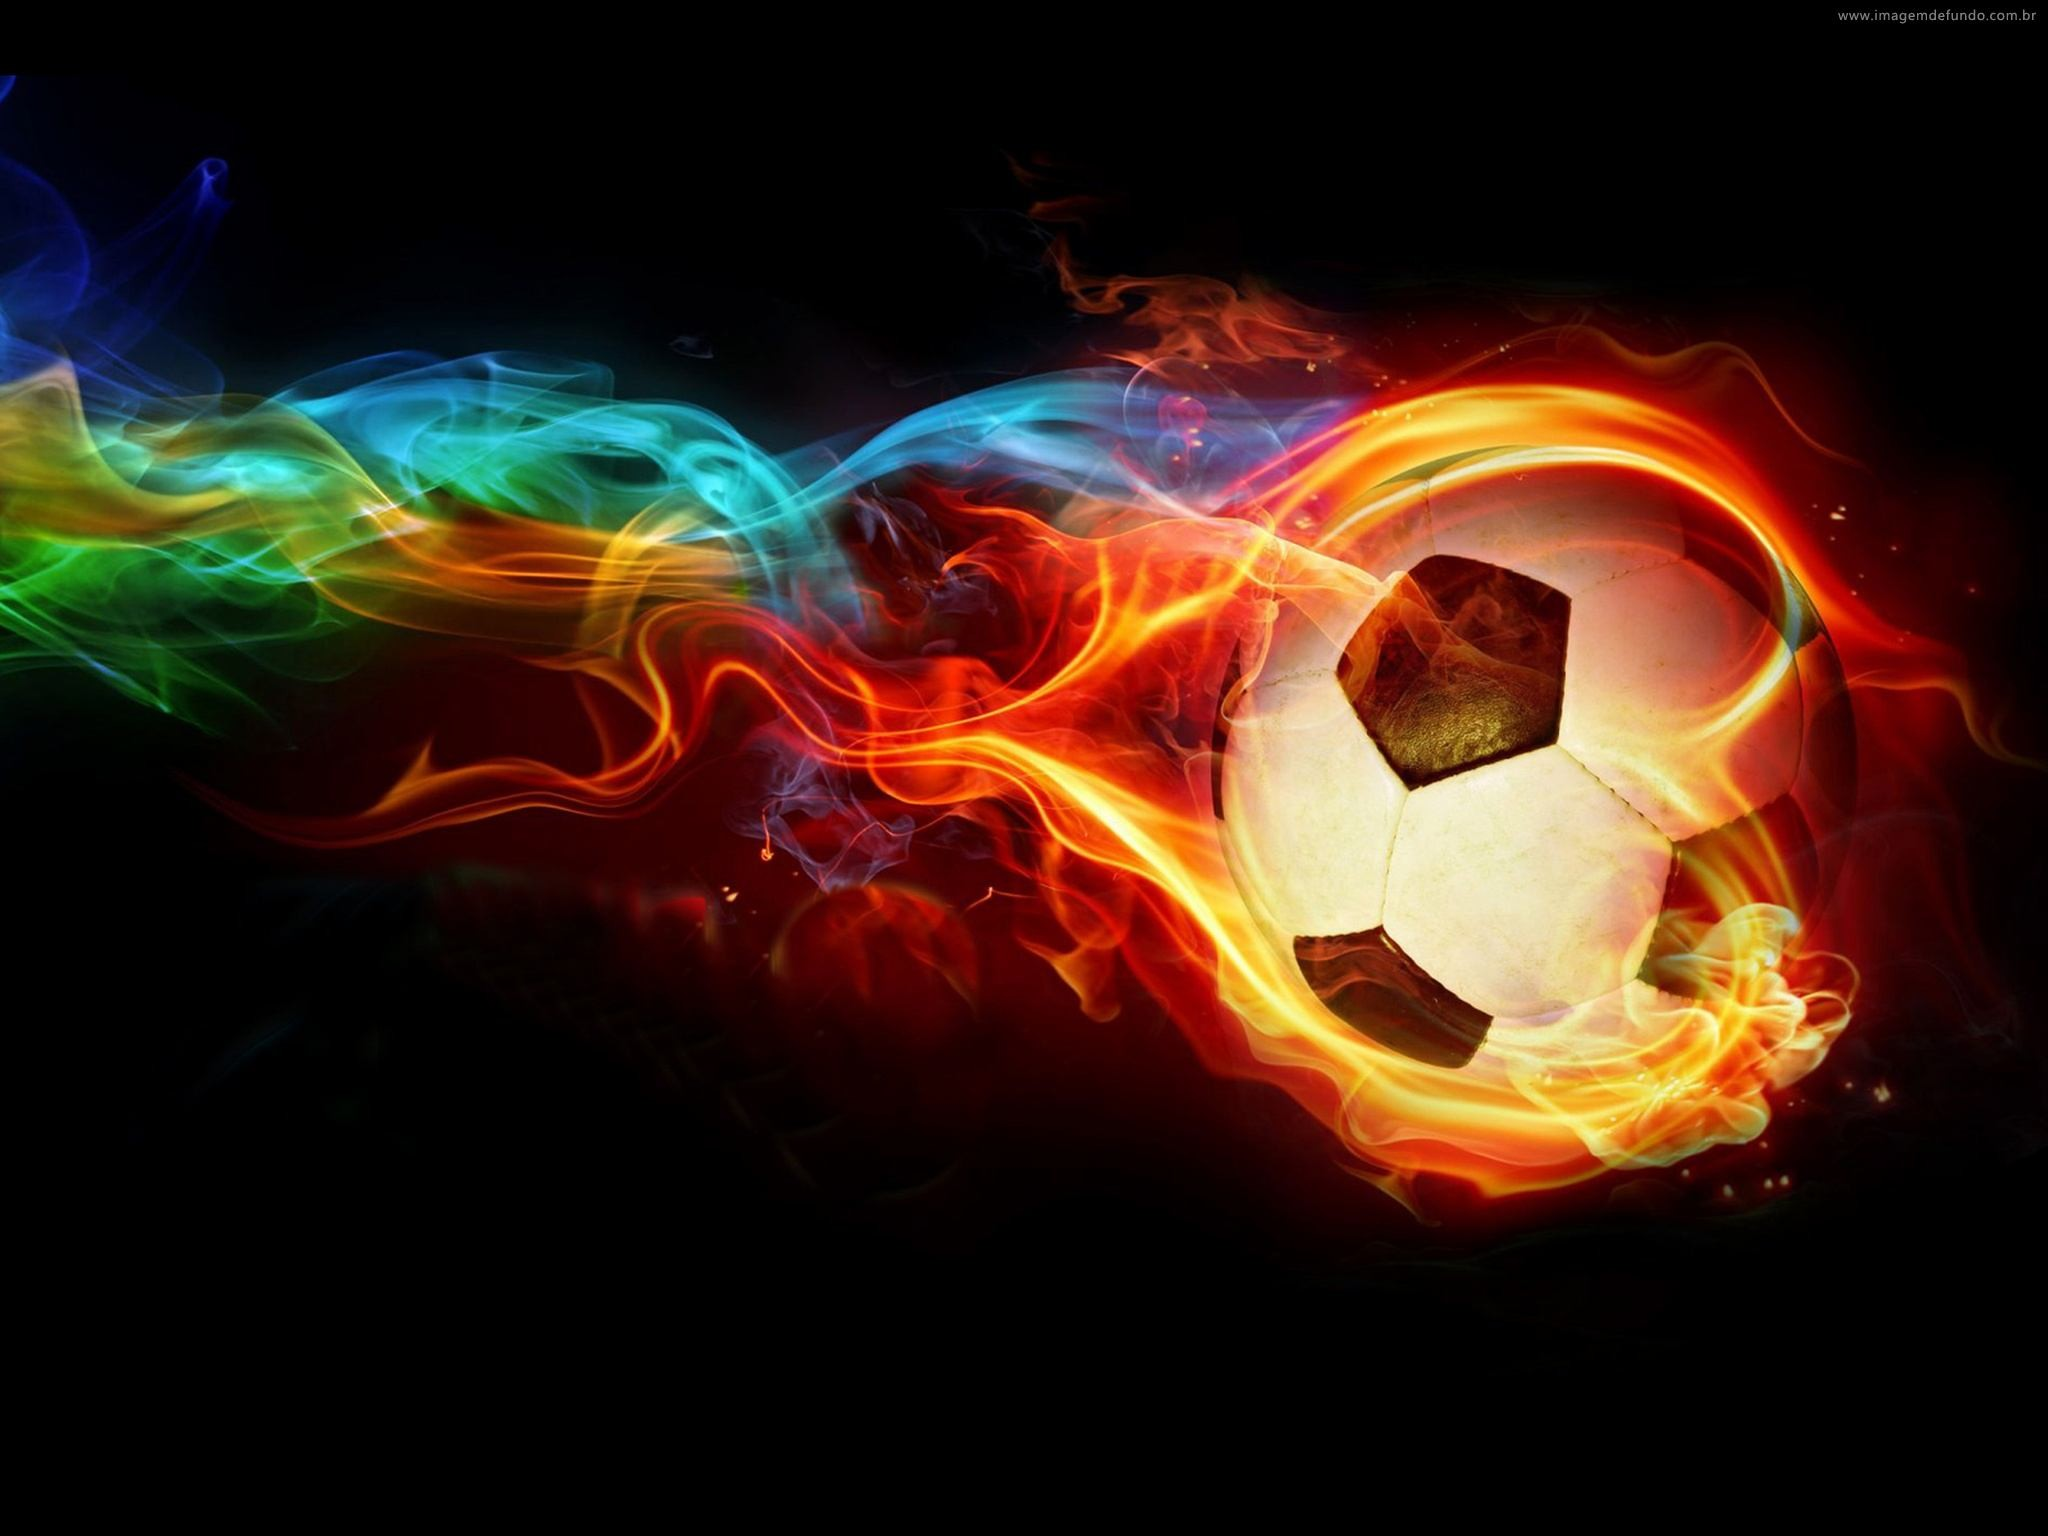 2048x1536 Cool Soccer Backgrounds Wallpaper 1300×800 Cool Soccer Pictures Wallpapers  (73 Wallpapers) |